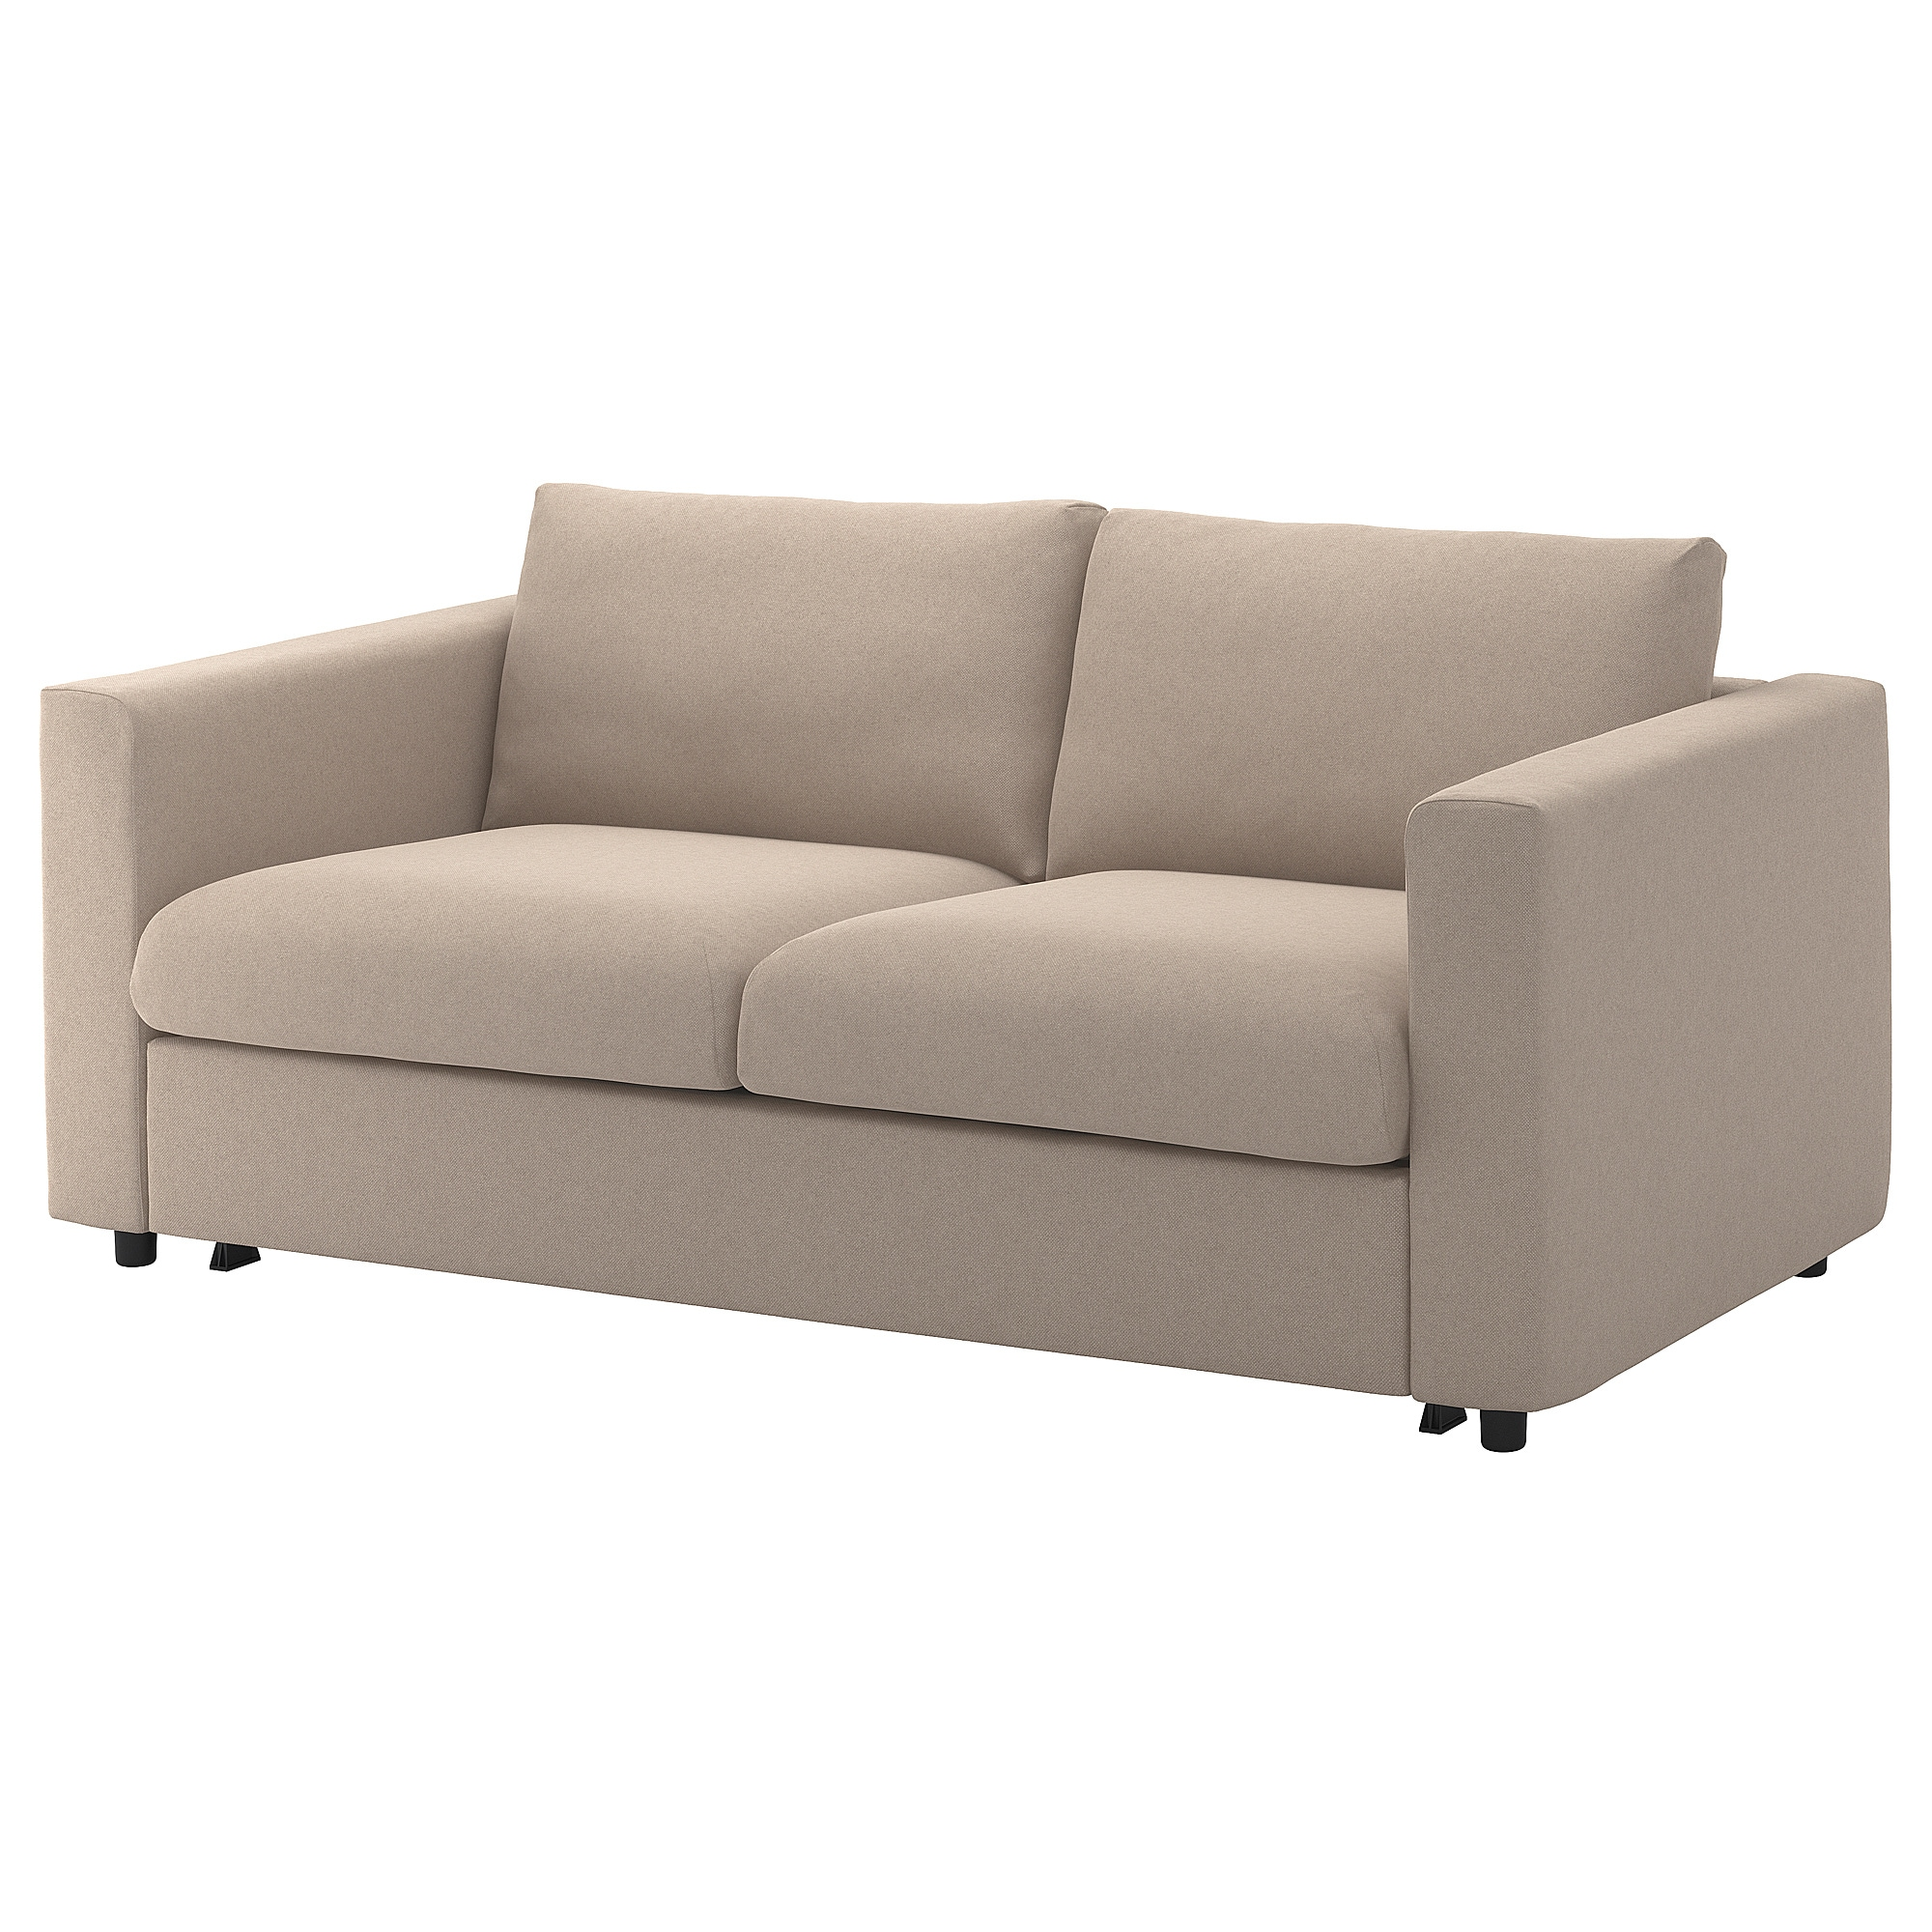 Vimle 2 Seat Sofa Bed Tallmyra Beige Ikea Loveseat Sofa Bed Ikea Sofa Beds